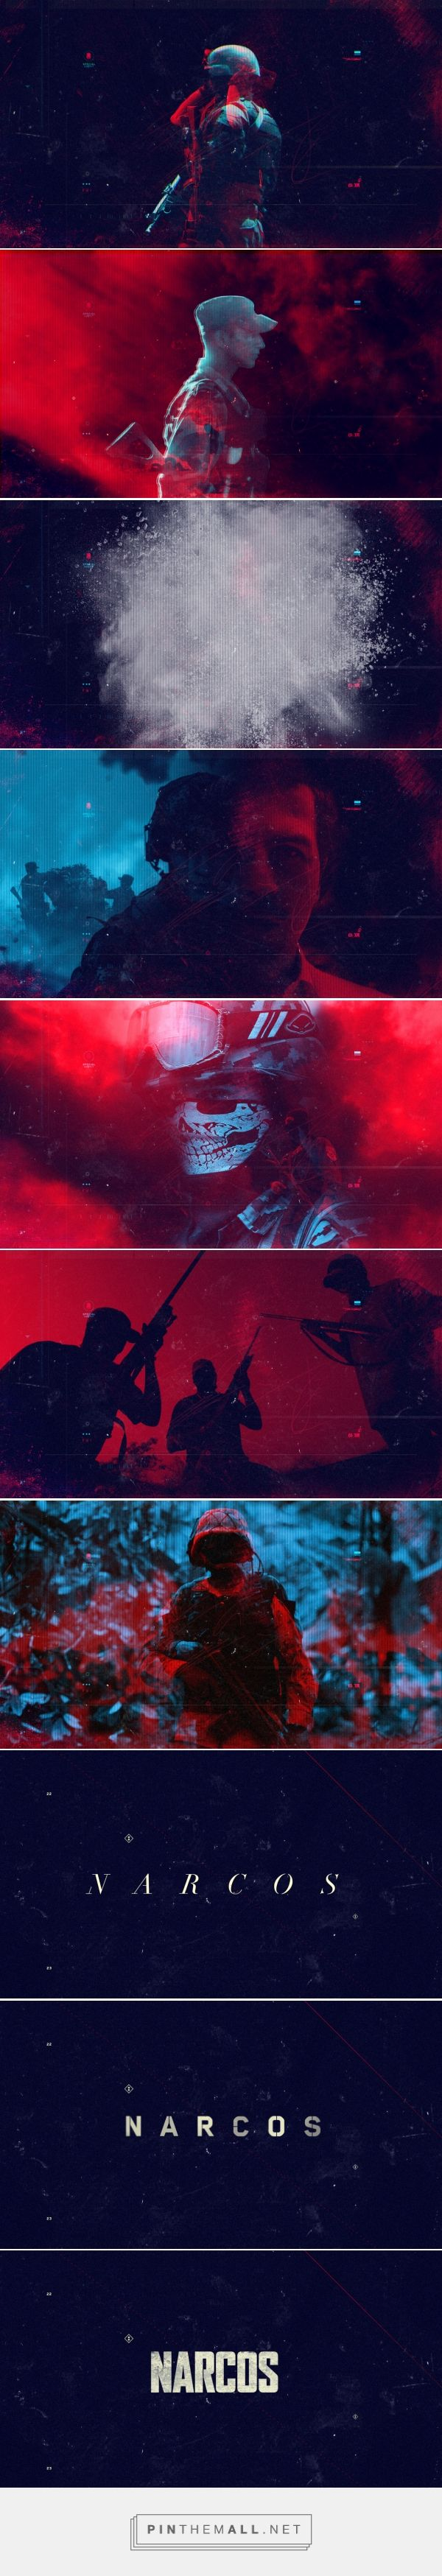 Perfectionalism2 Style frames for Narcos by Kevin Heo - created on 2016-06-02 16:35:45